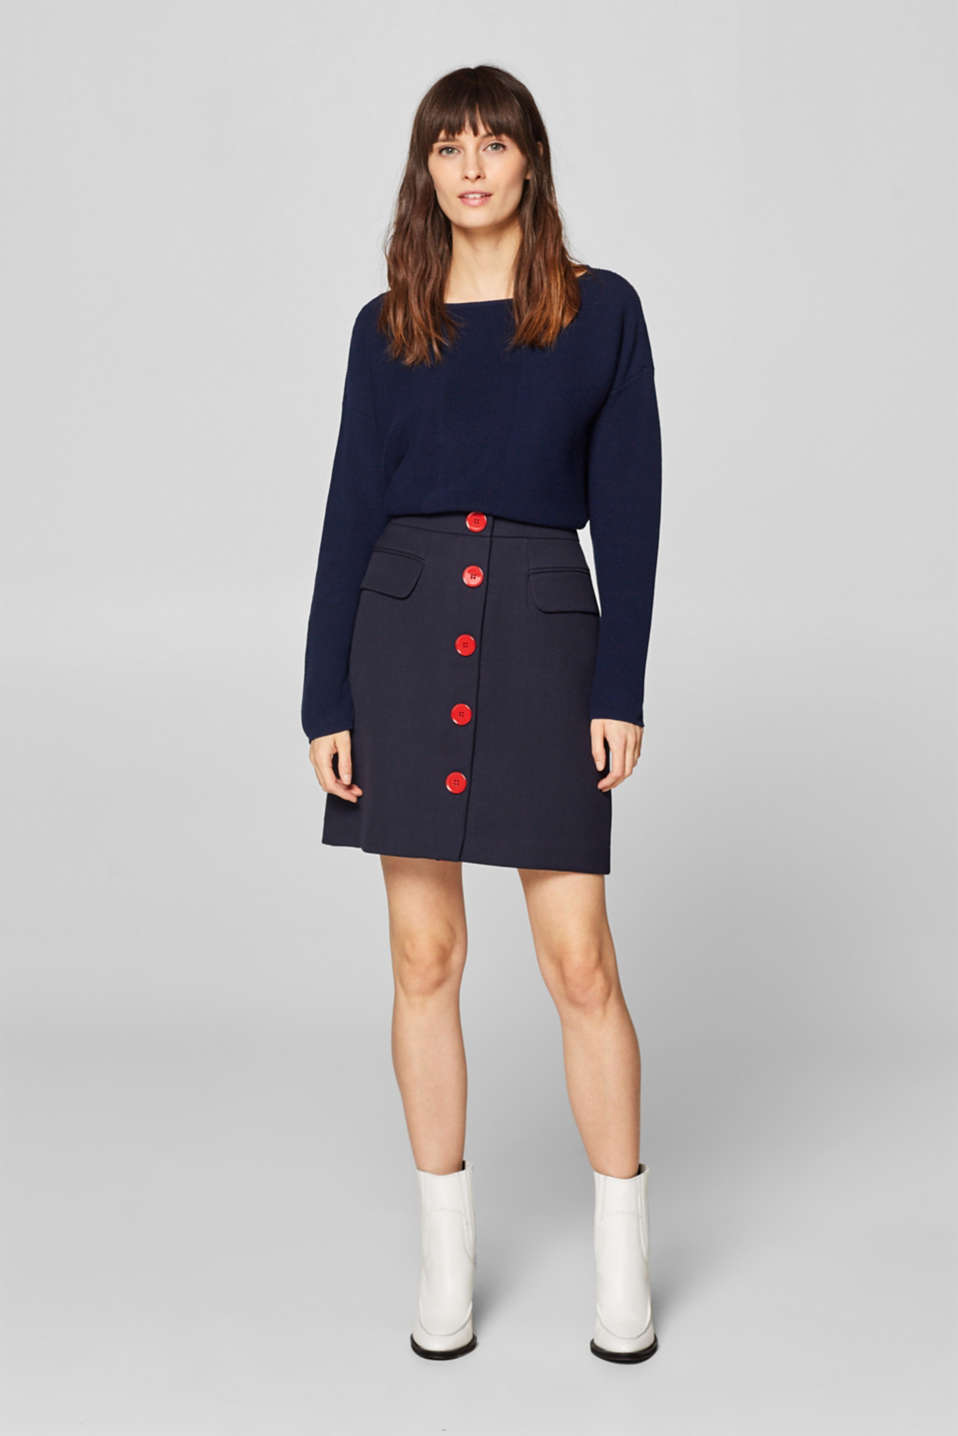 Sweaters, NAVY, detail image number 1